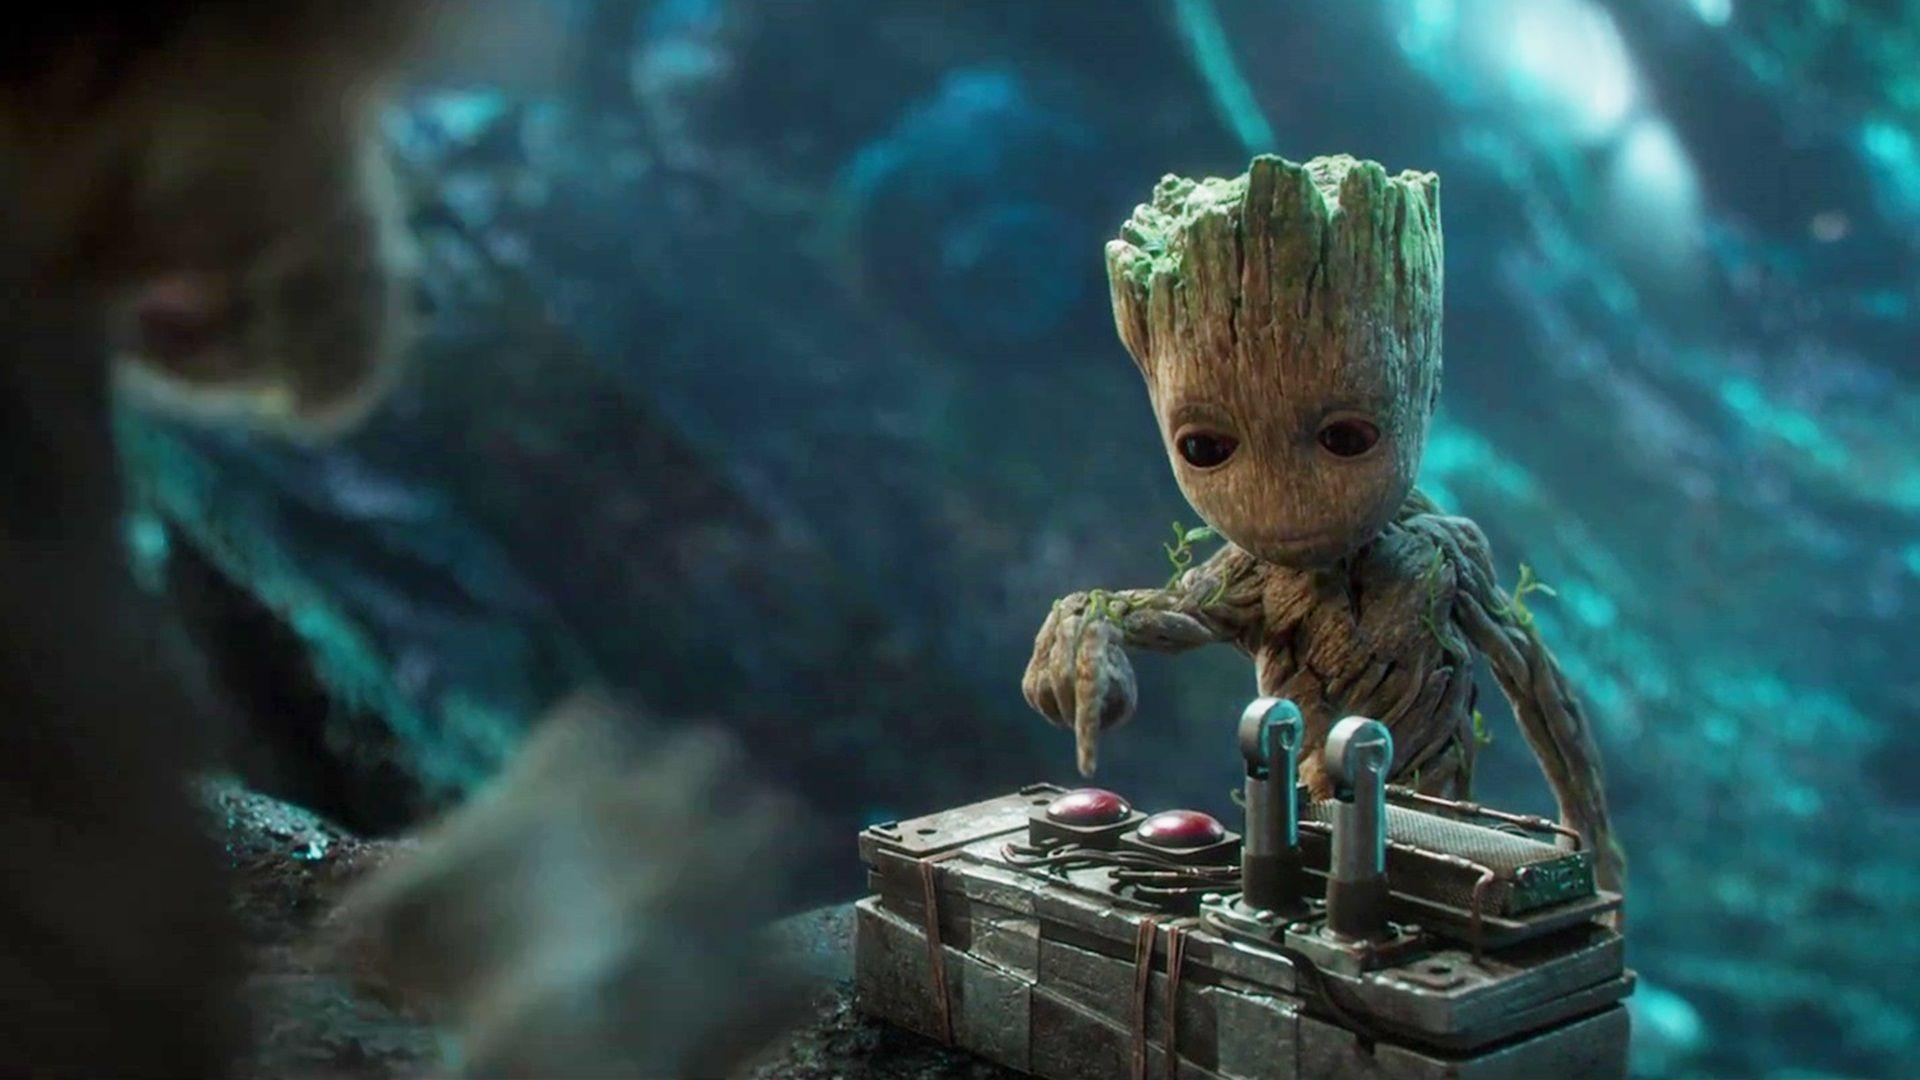 Guardians Of The Galaxy Vol. 2 Baby Groot Wallpaper 11625 - Baltana